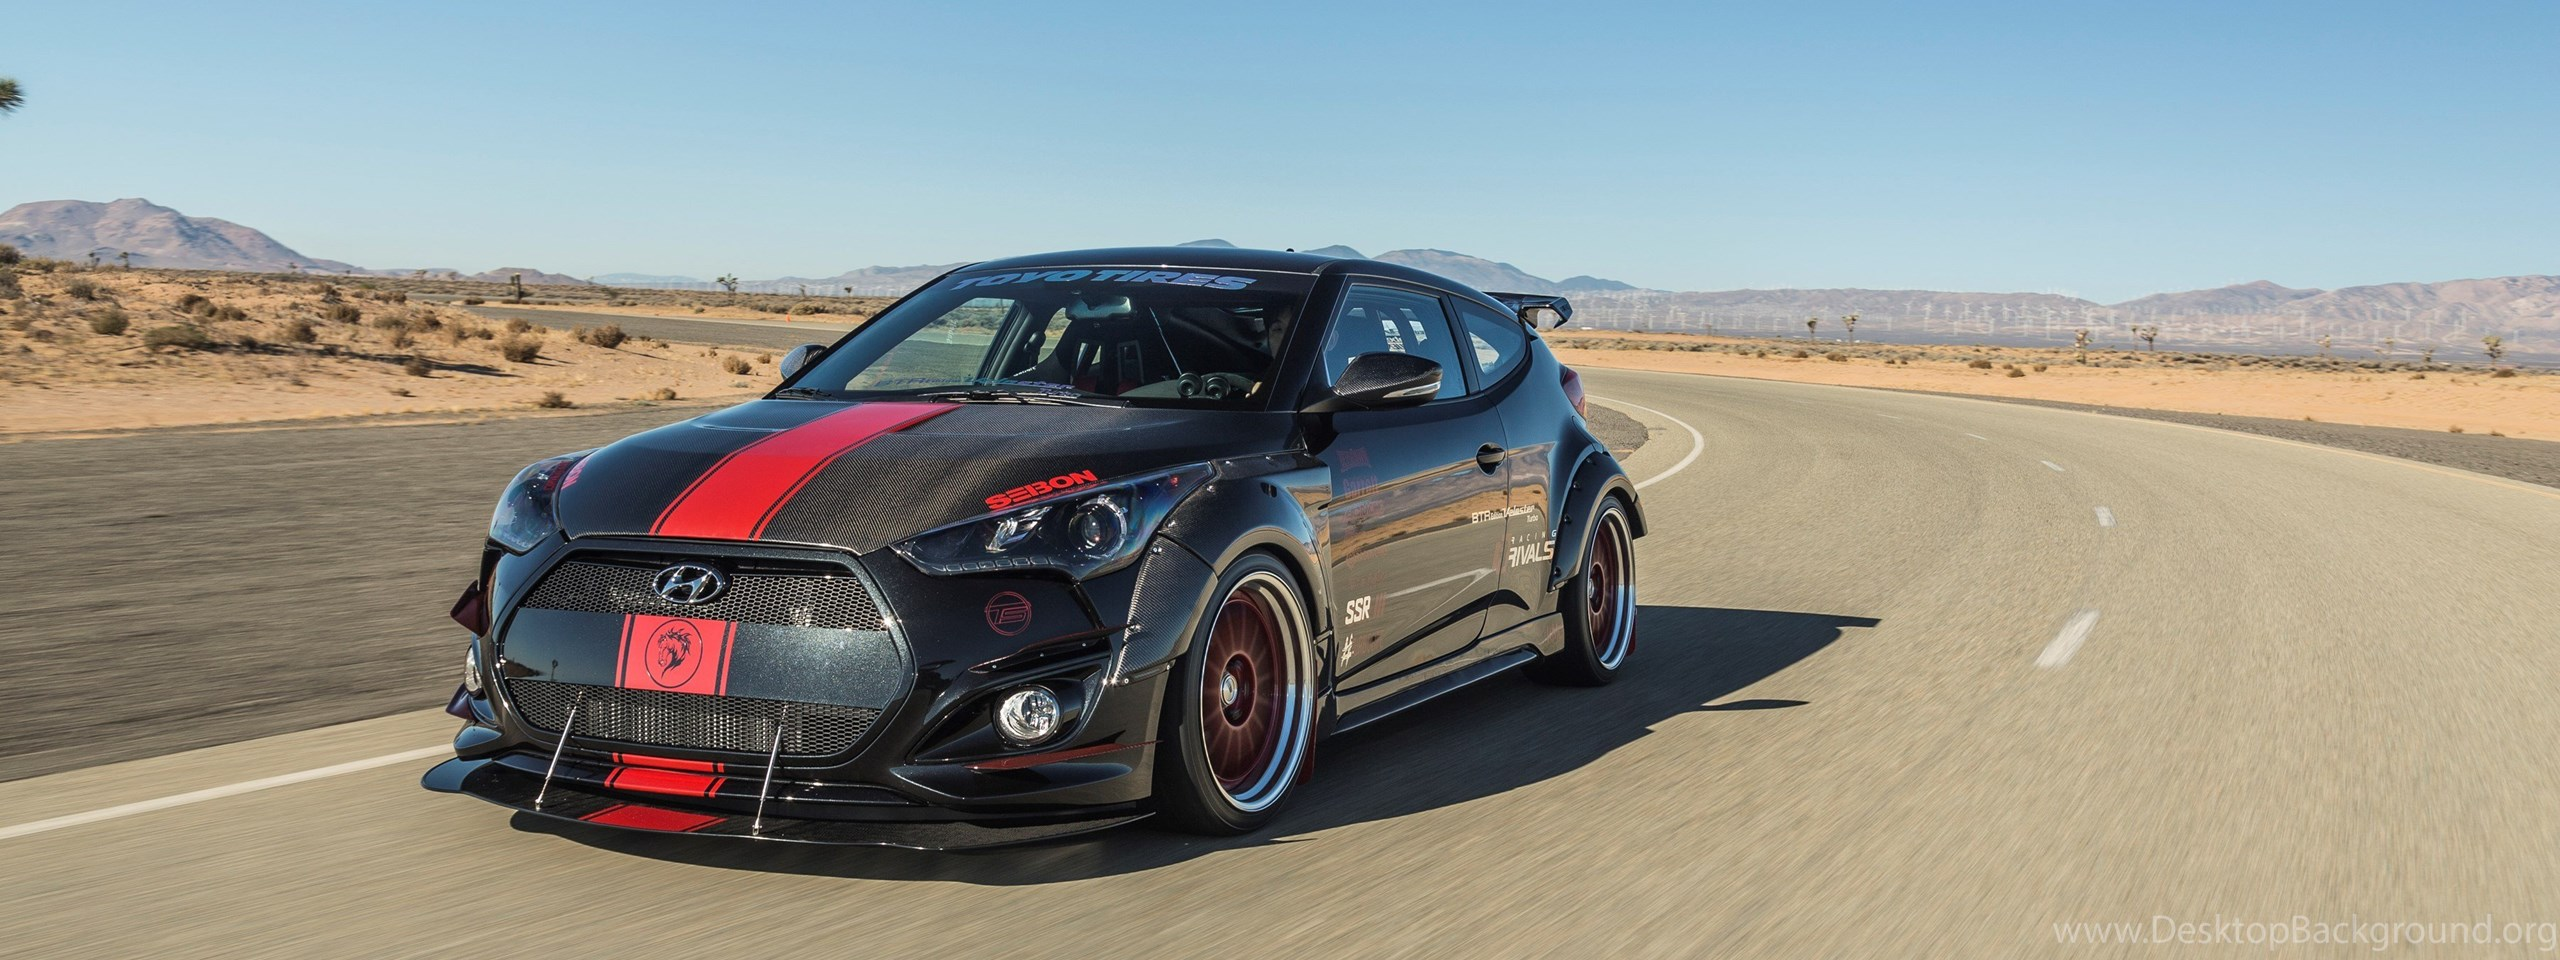 veloster someone sinister car has gear sema news a top along turbo racing returns r spec type built to hyundai blood modified bringing prevnext